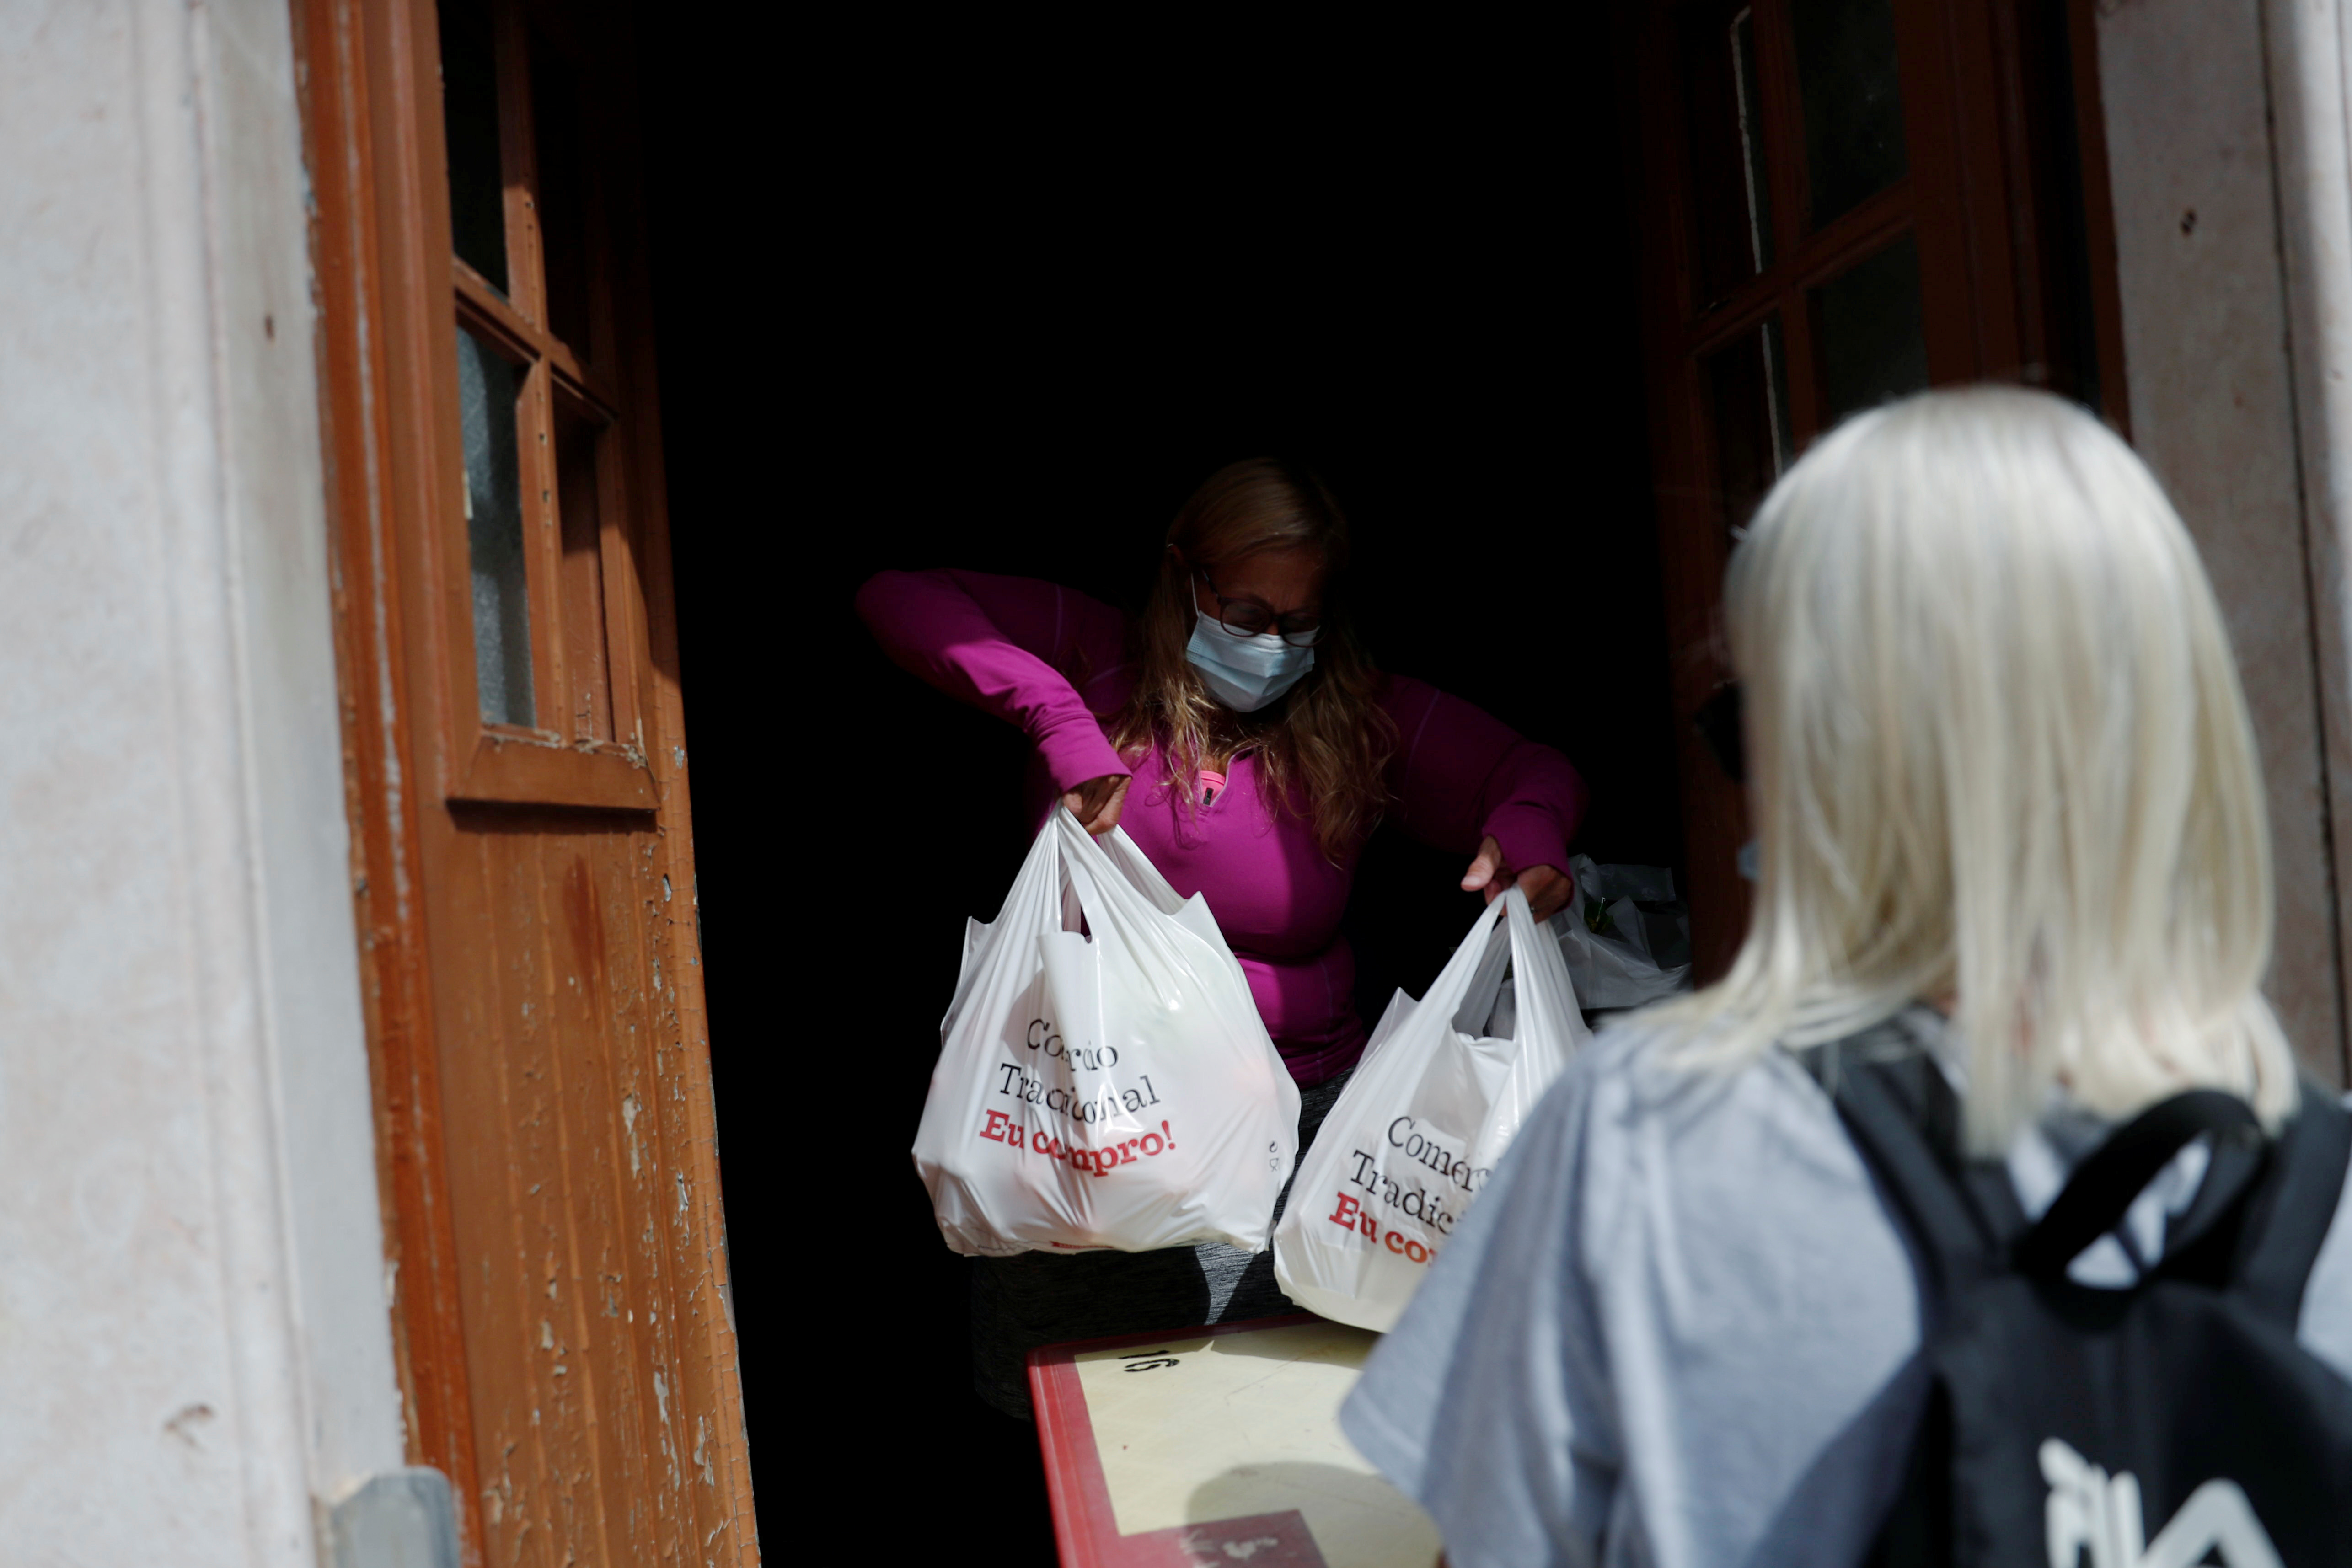 Volunteers work at East Algarve Families in Need Food Bank, during the coronavirus disease (COVID-19) pandemic in Tavira, Portugal, March 31, 2021. Picture taken March 31, 2021. REUTERS/Pedro Nunes